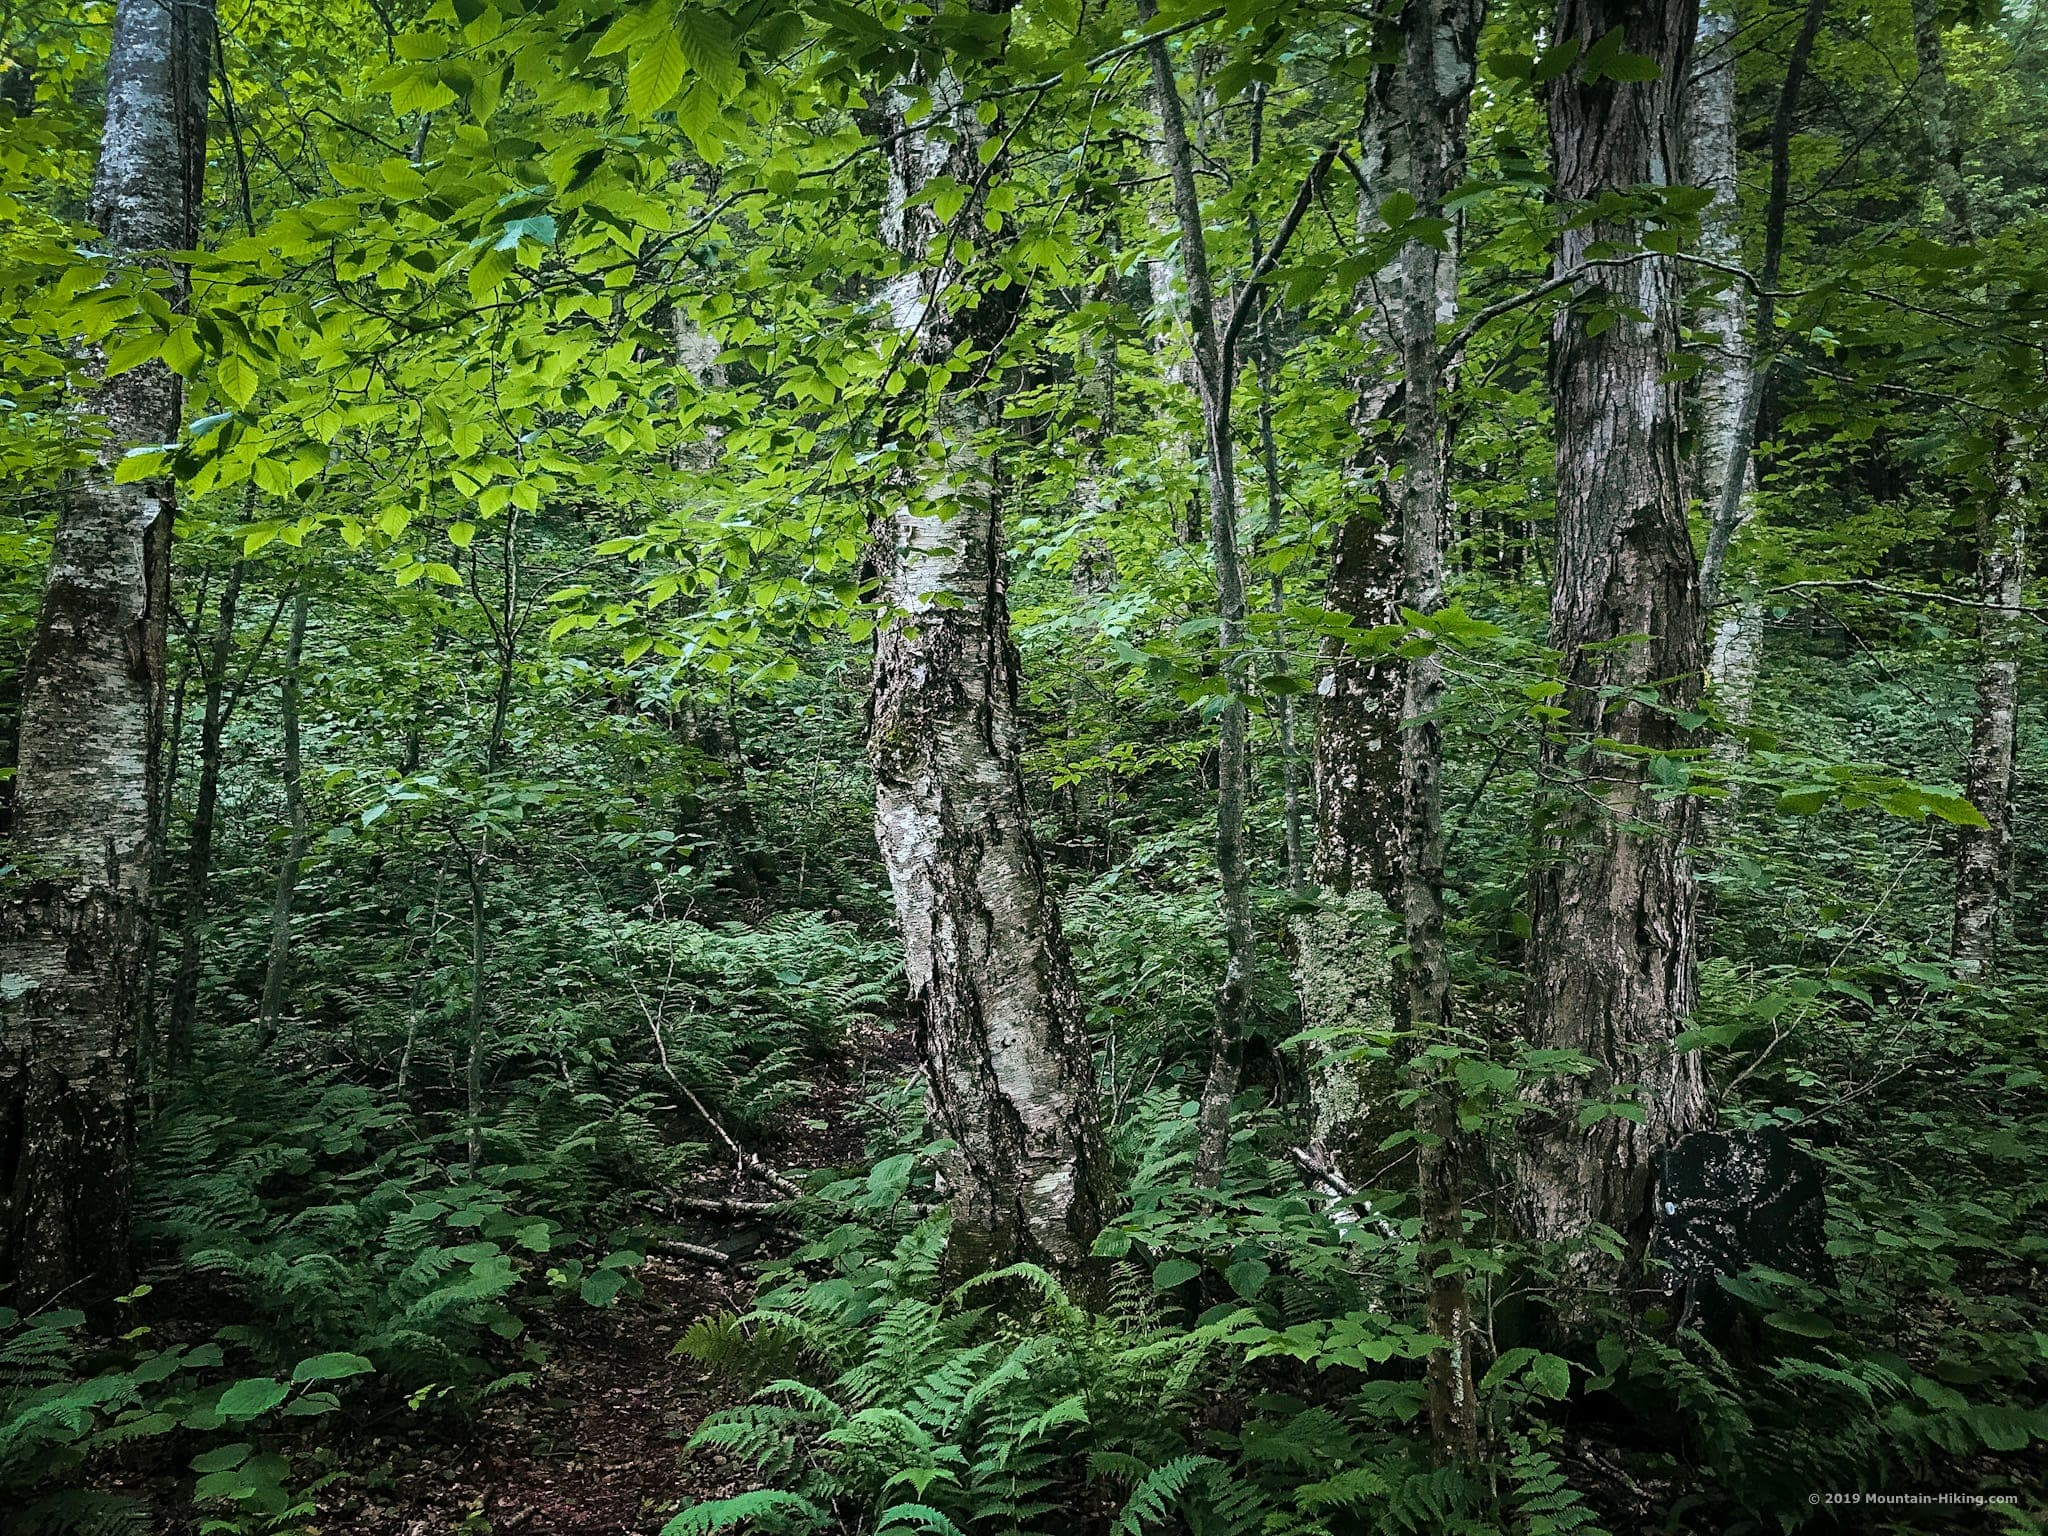 trees on hiking trail in woods